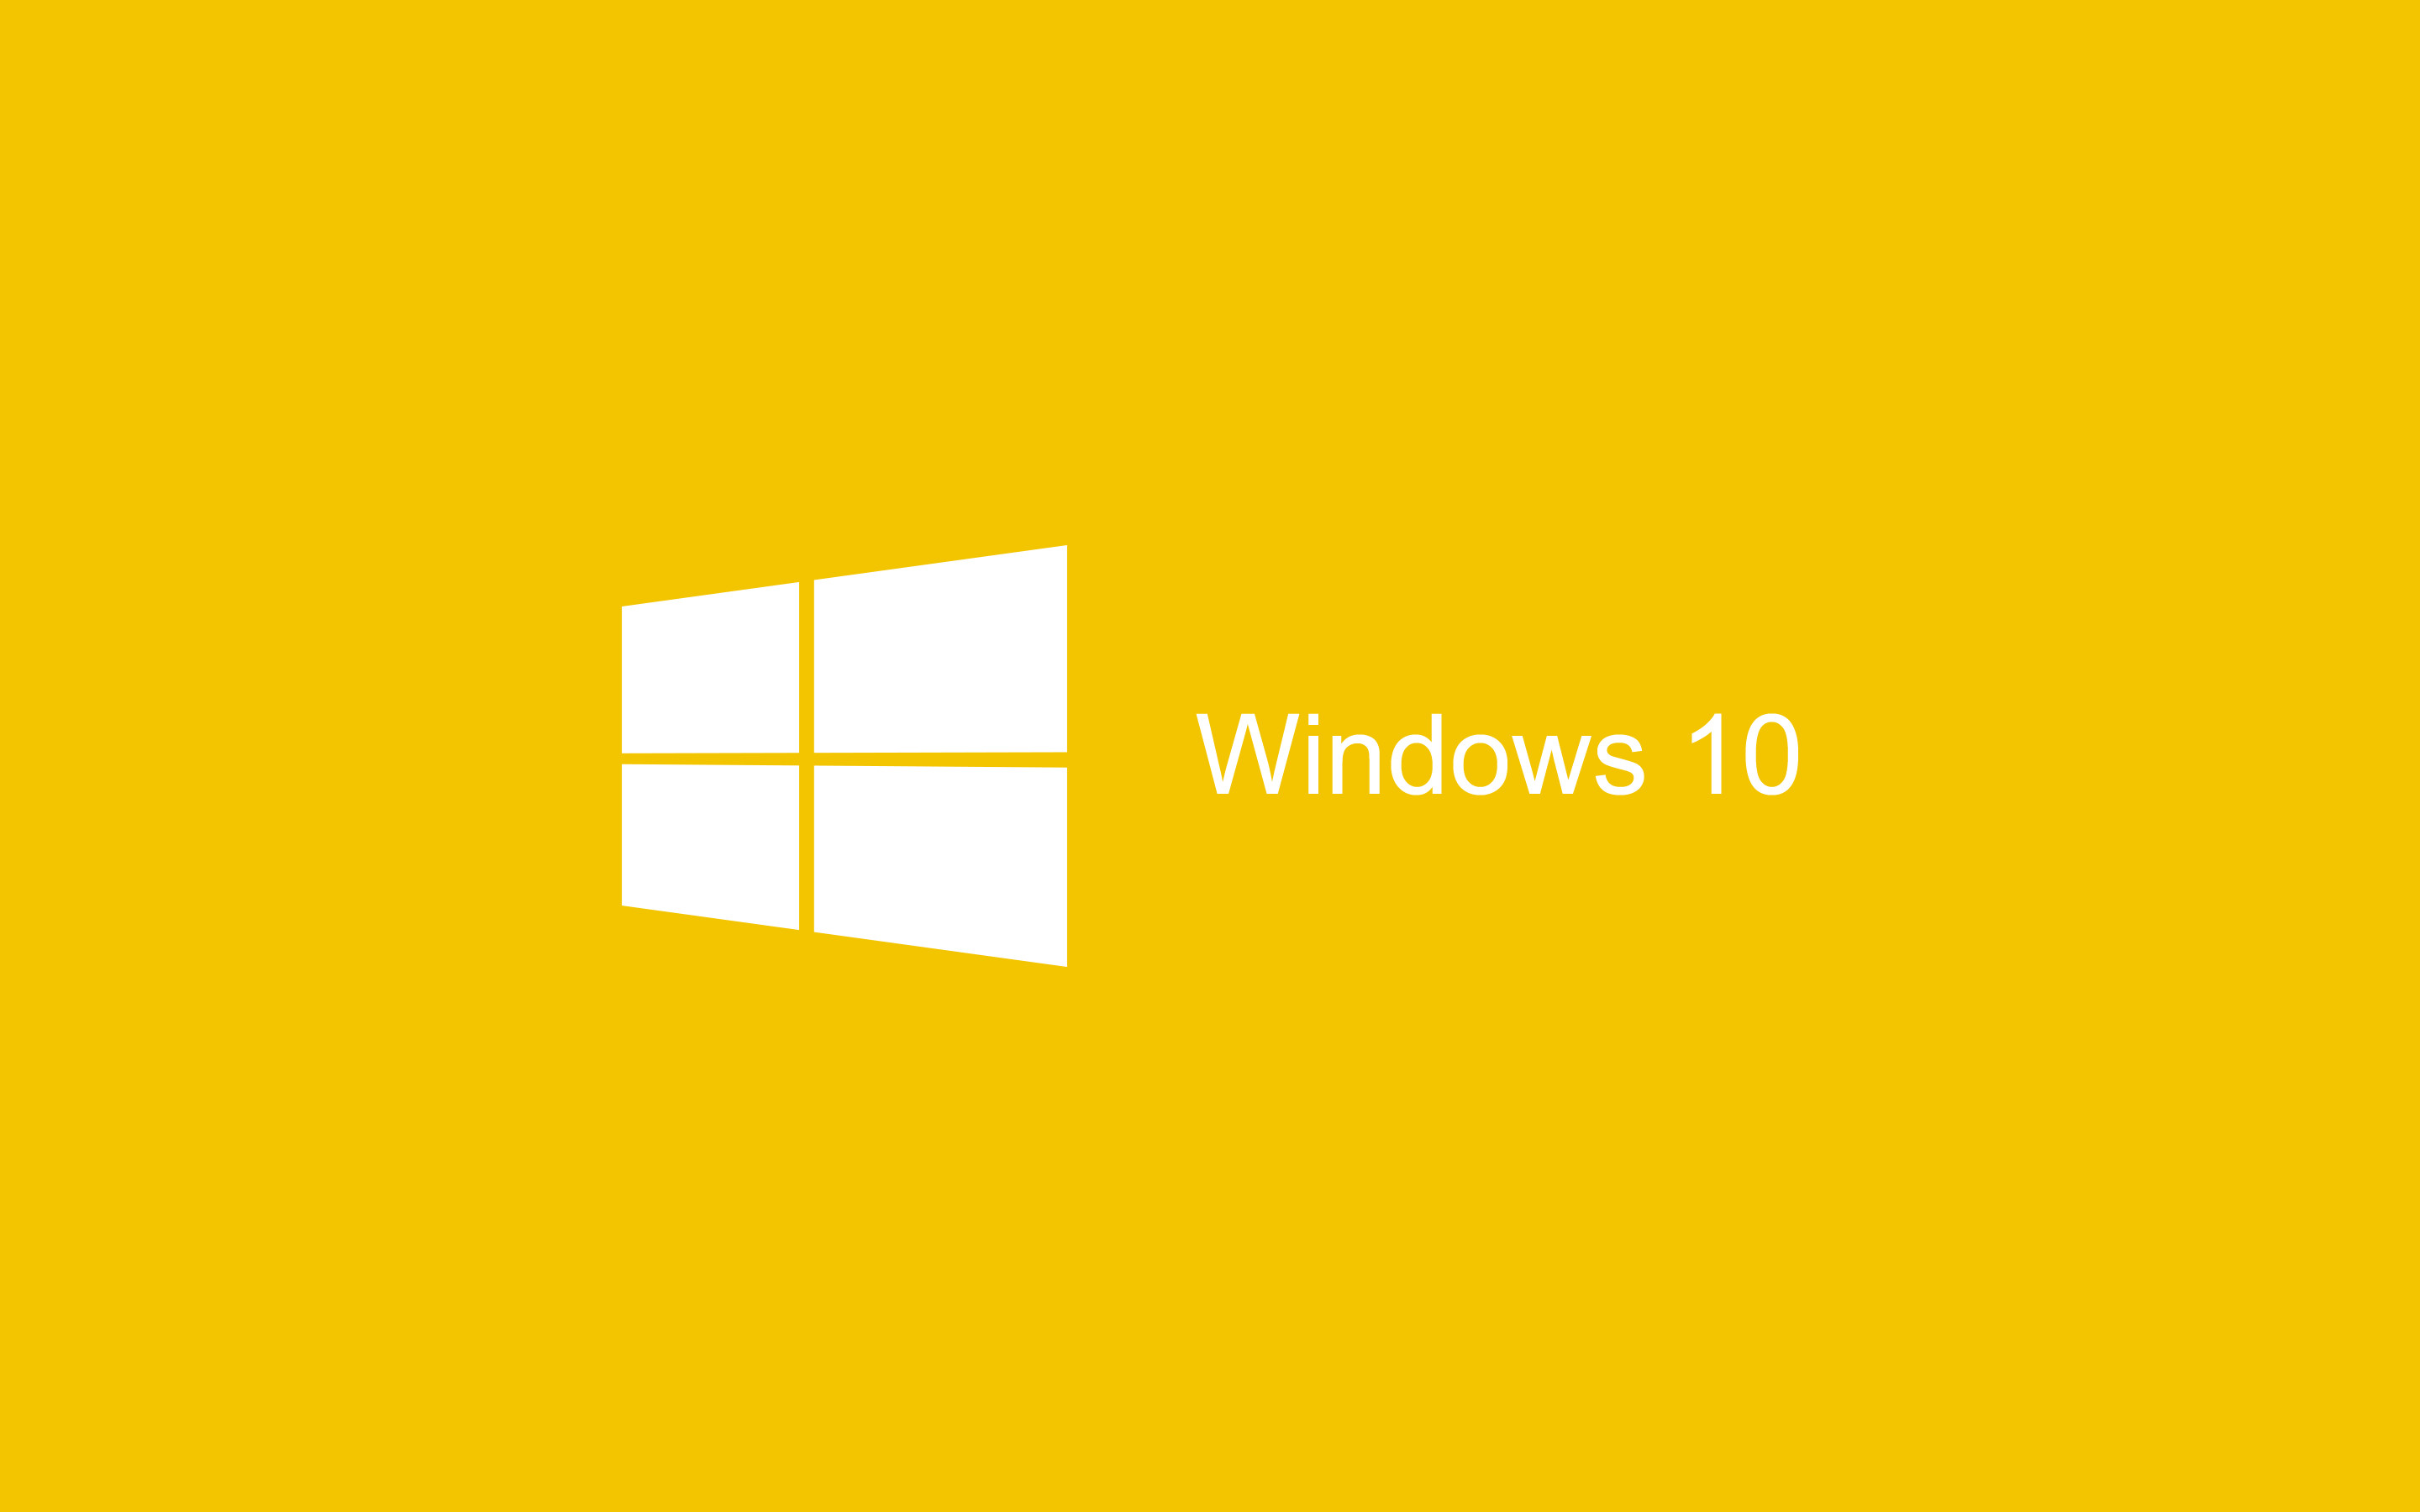 HD Wallpapers For Windows 10-Get the Newest Collection of HD Wallpapers For Windows  10